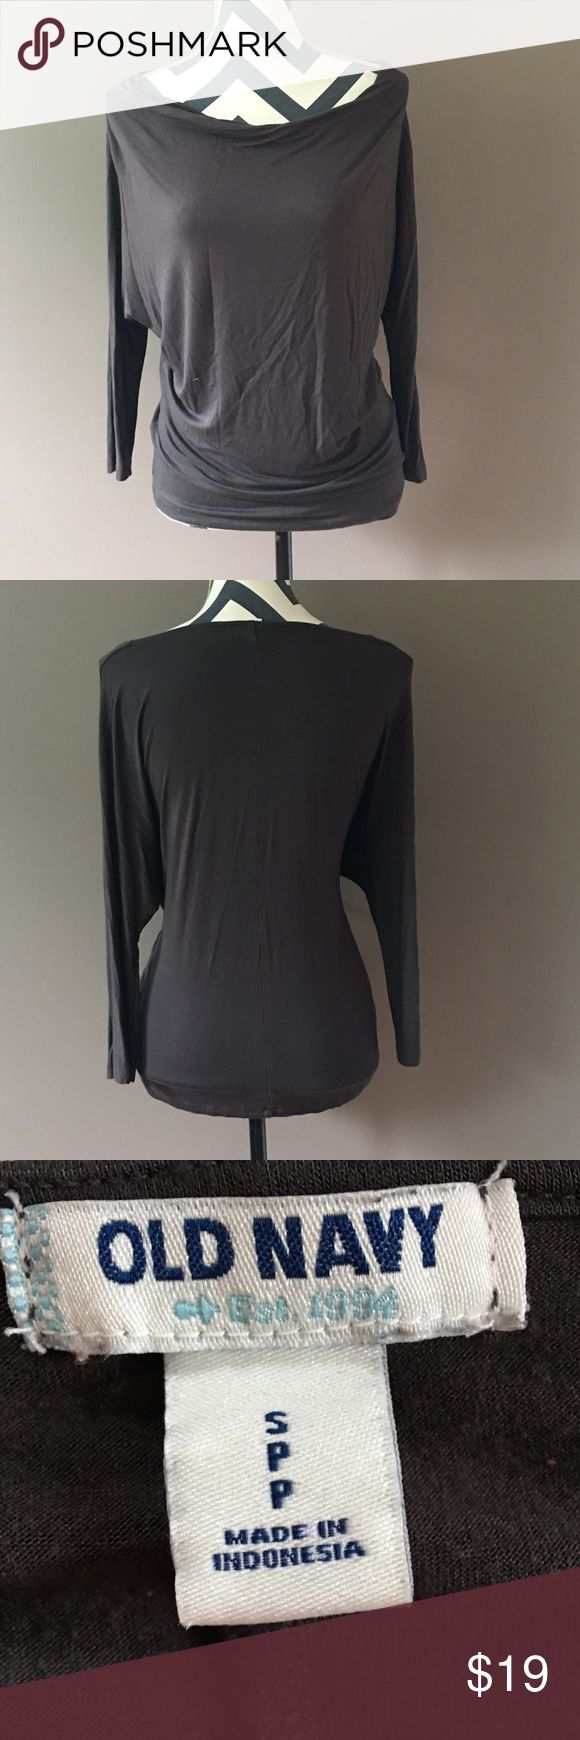 EUC Old Navy long sleeve top Comfortable, classy, and great for a night out. Long sleeve with looser fit under armpits- a very flattering style. Looser around mid section and longer fit to hip. Worn only once! Old Navy Tops